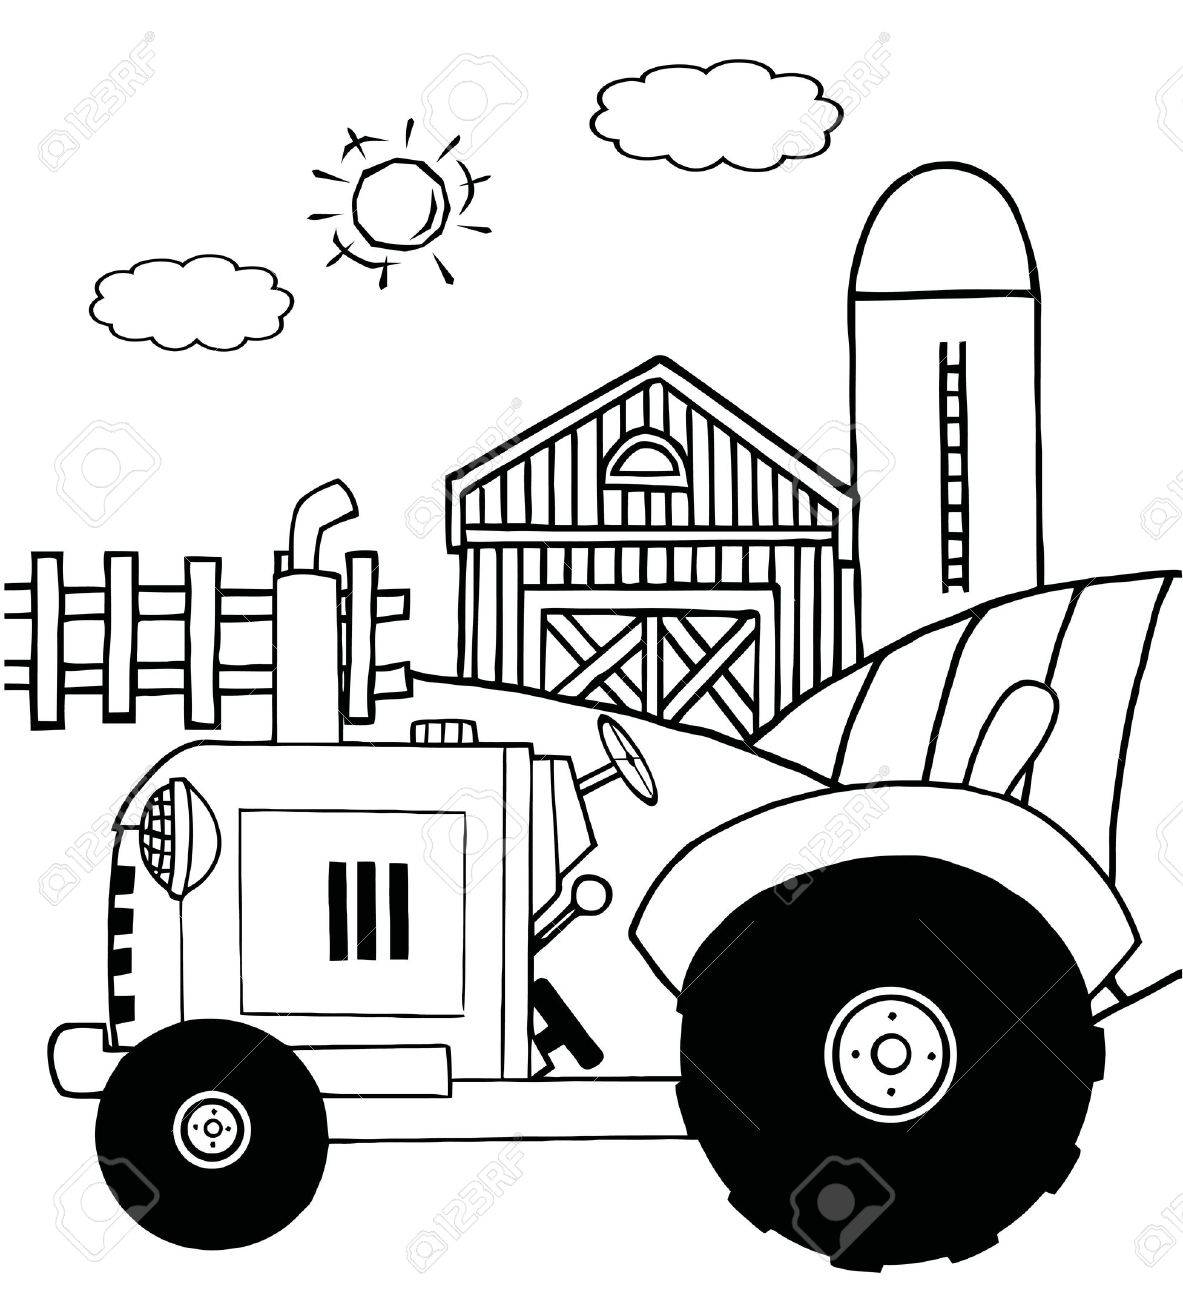 outlined farm tractor in a pasture near a barn and silo royalty free